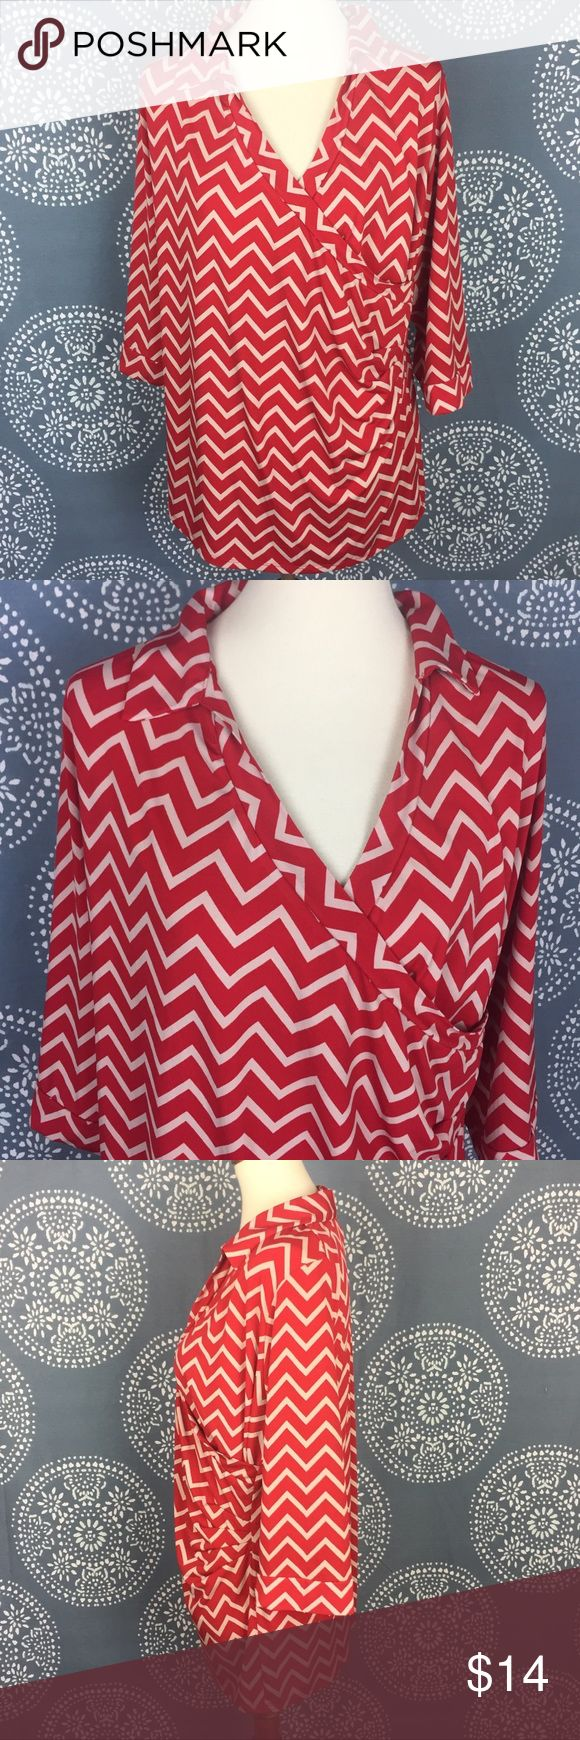 "Motherhood Maternity Red & Cream Chevron Top Cute maternity top with a wrap style and side cinching. It is a chevron pattern in red & cream. The sleeves are 3/4 length. Super cute and great condition.  22"" armpit to armpit 27"" long Motherhood Maternity Tops"